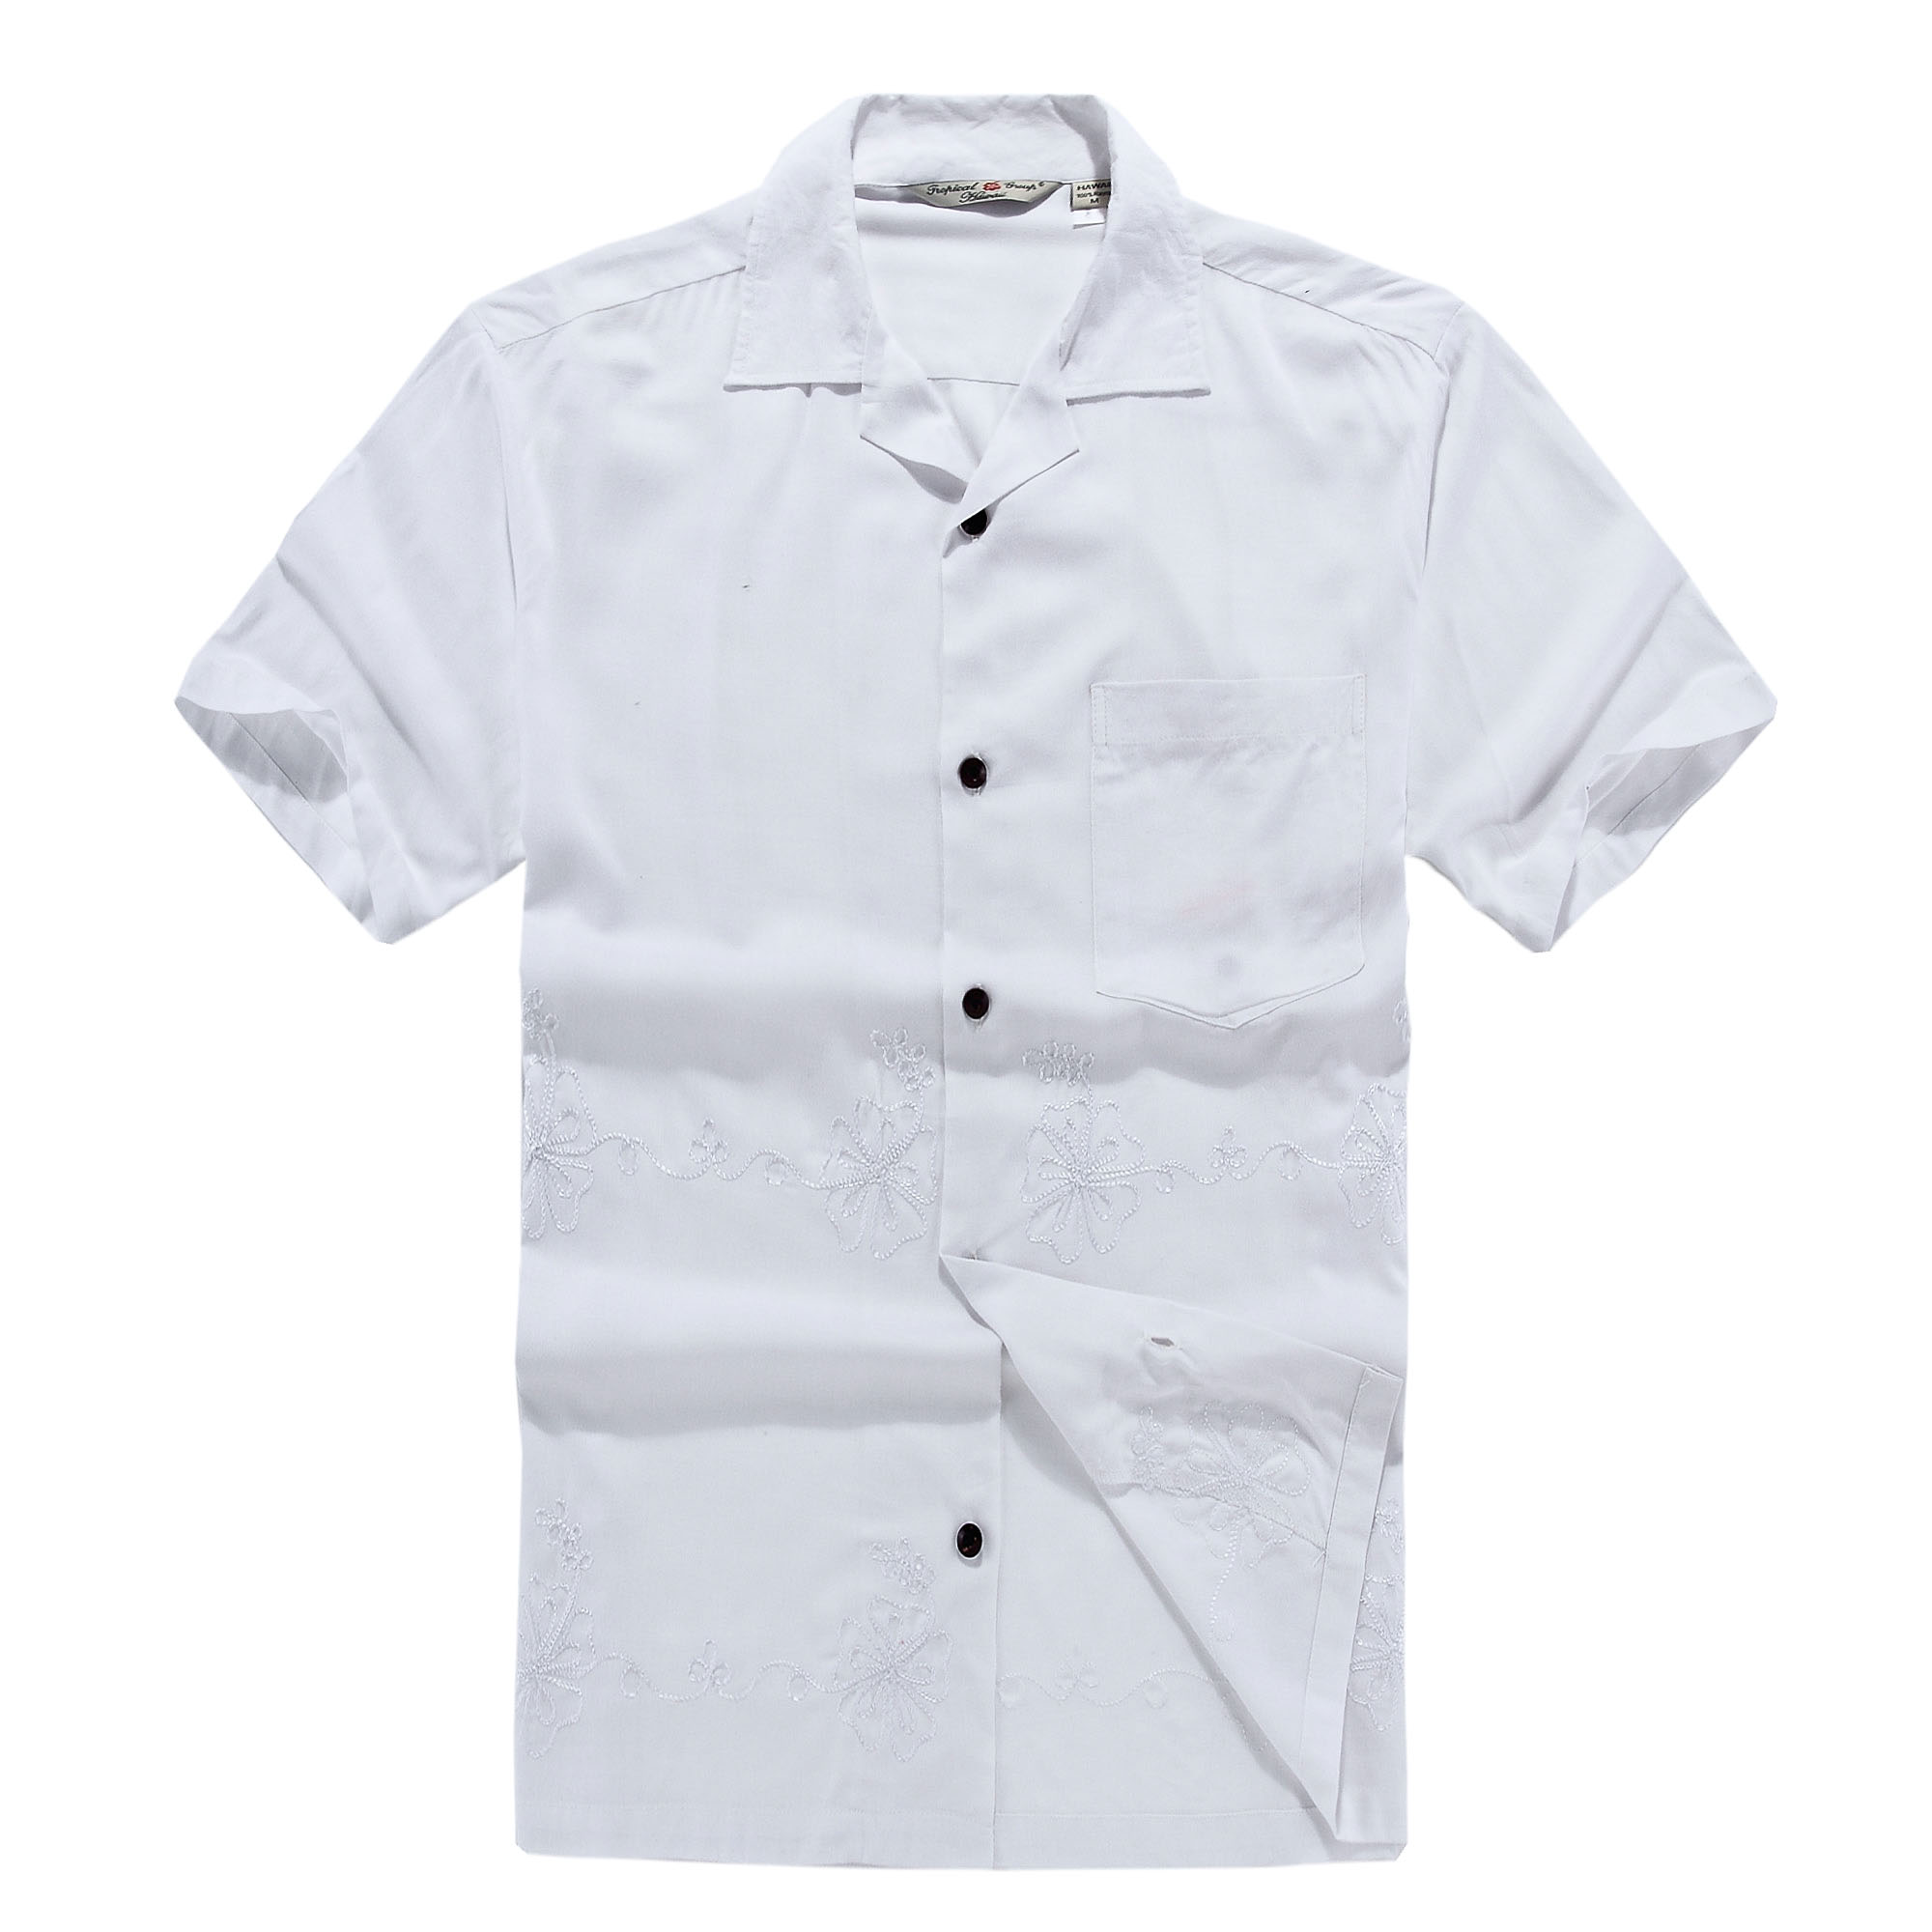 Men's Hawaiian Shirt White Dress